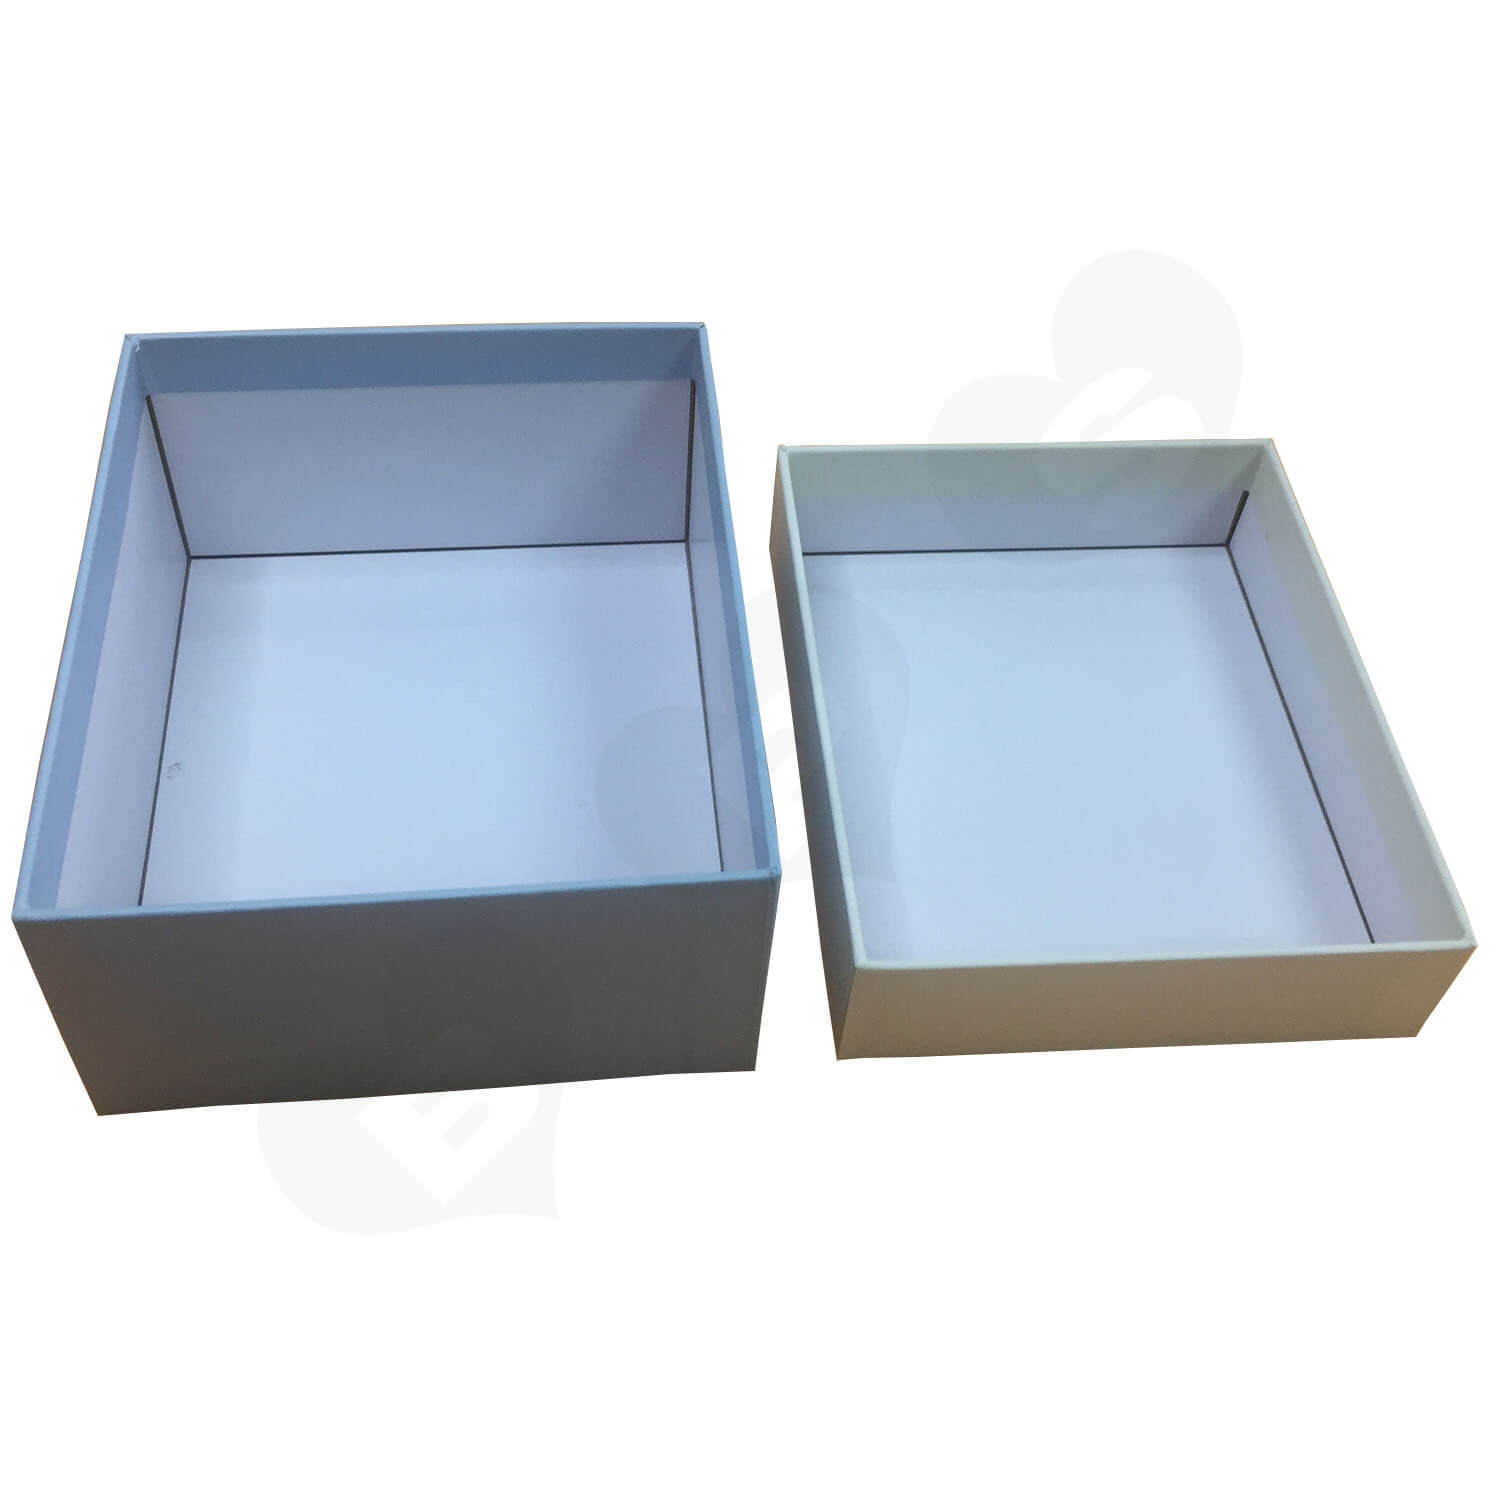 Custom Printing Top And Bottom Game Cards Rigid Box Side View 3